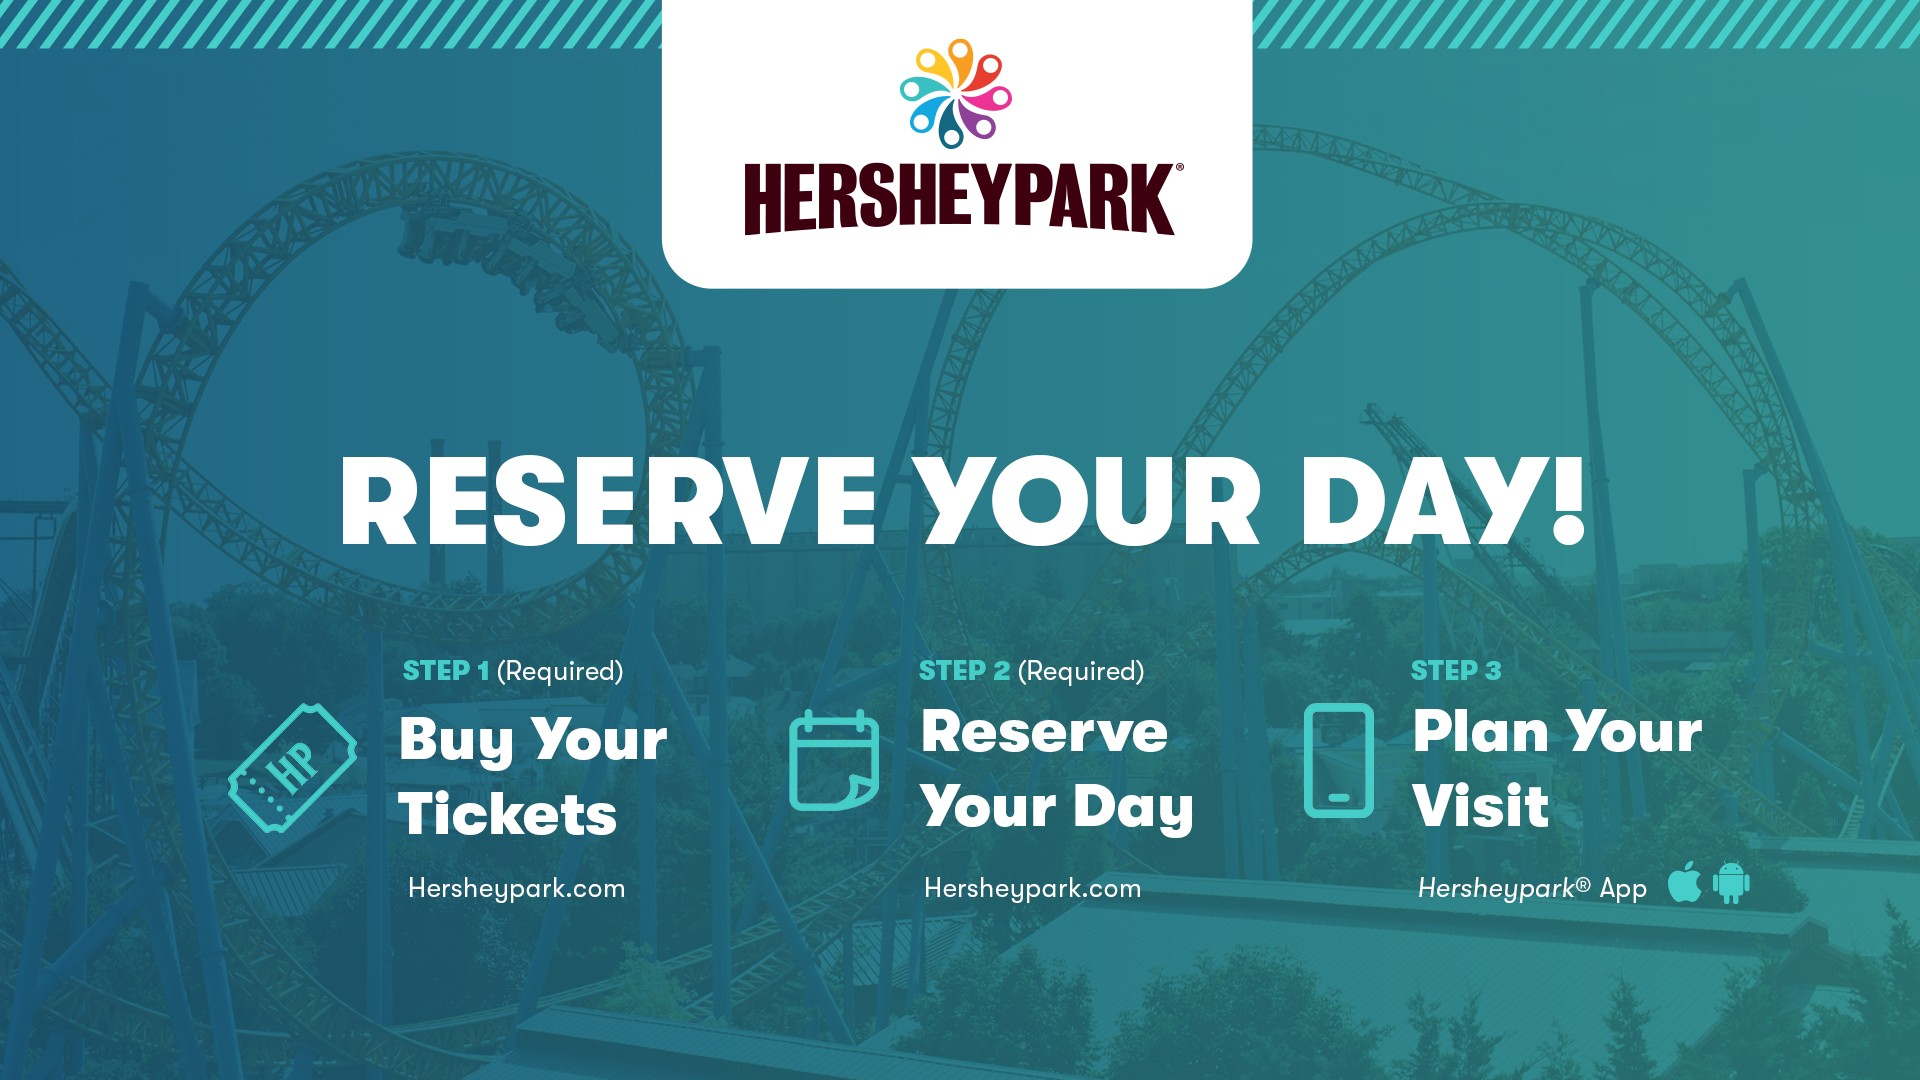 Reserve Your Day